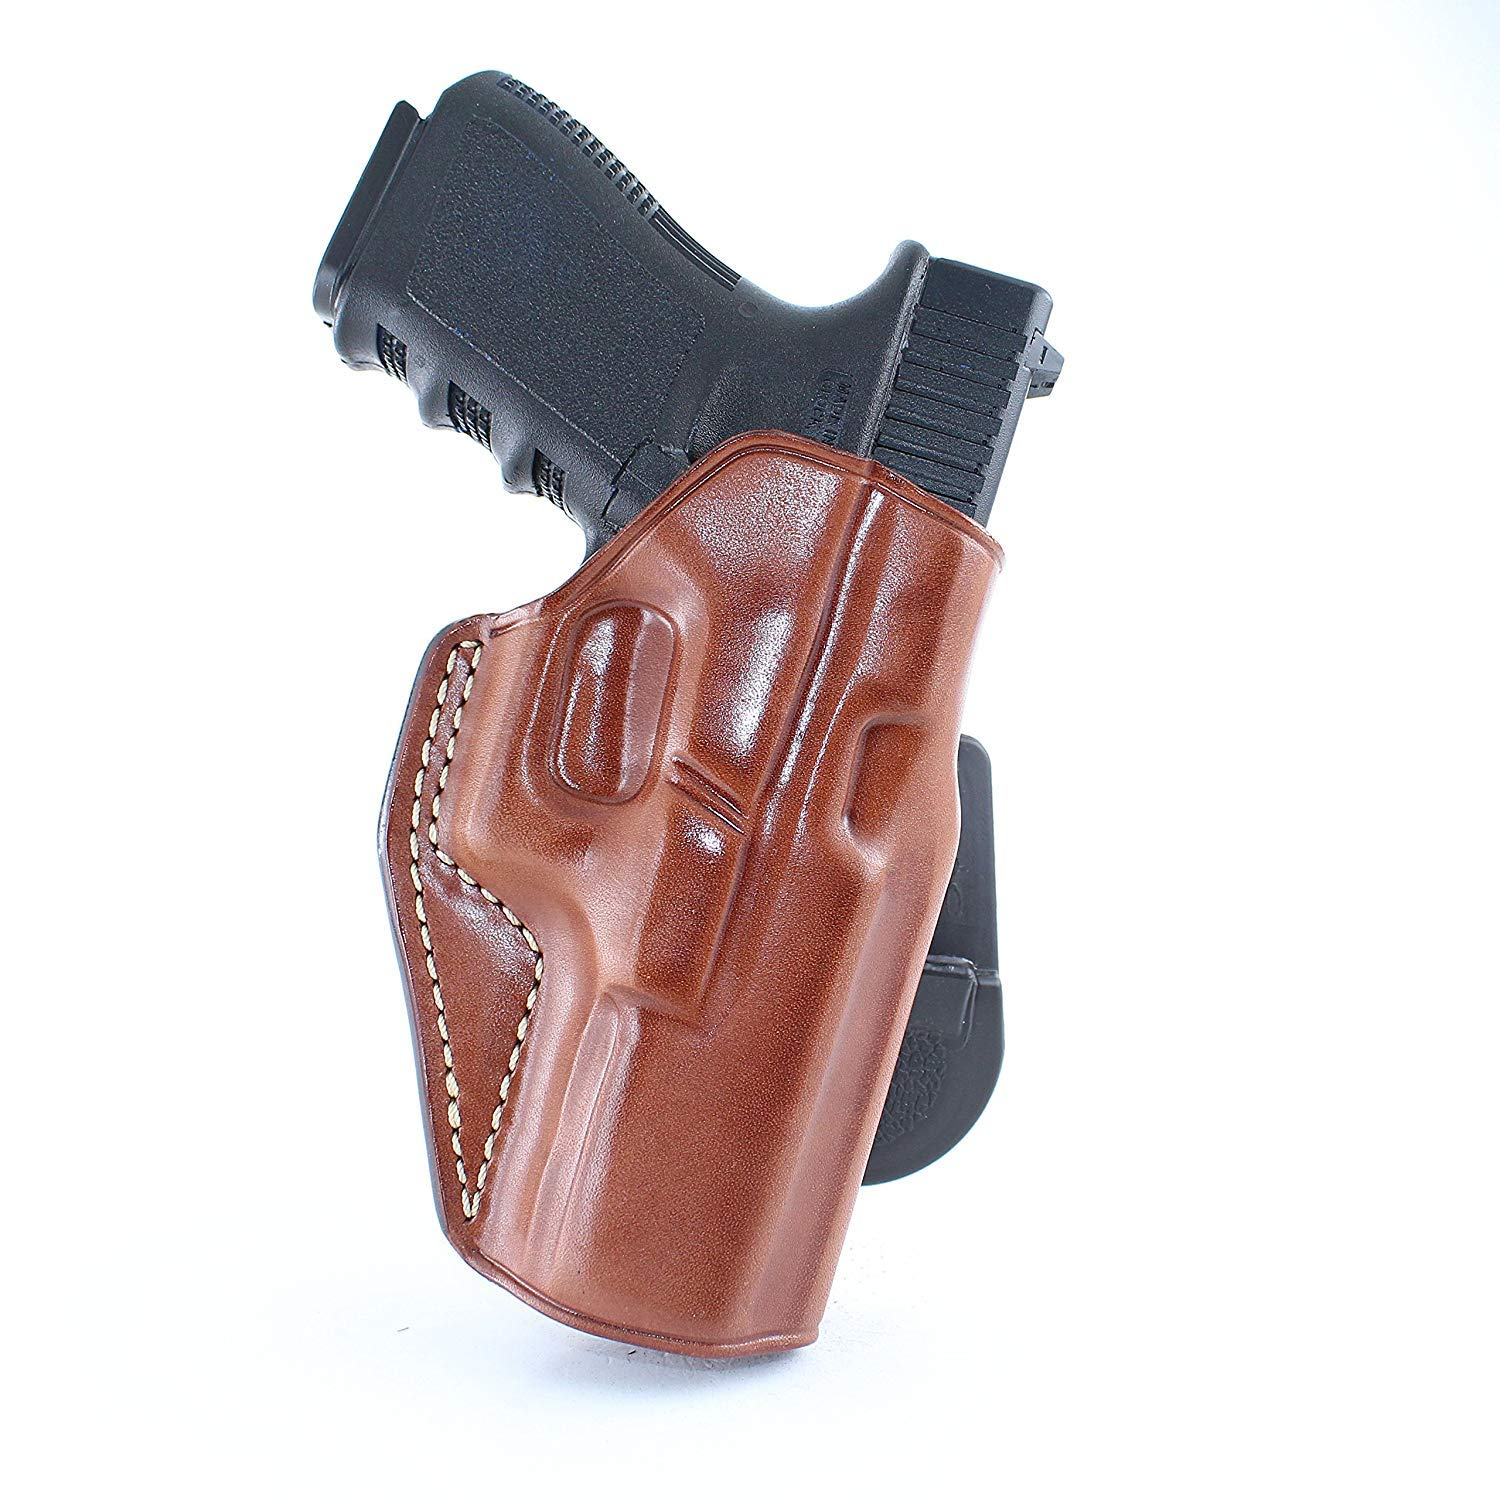 Premium Leather Paddle Holster Compact